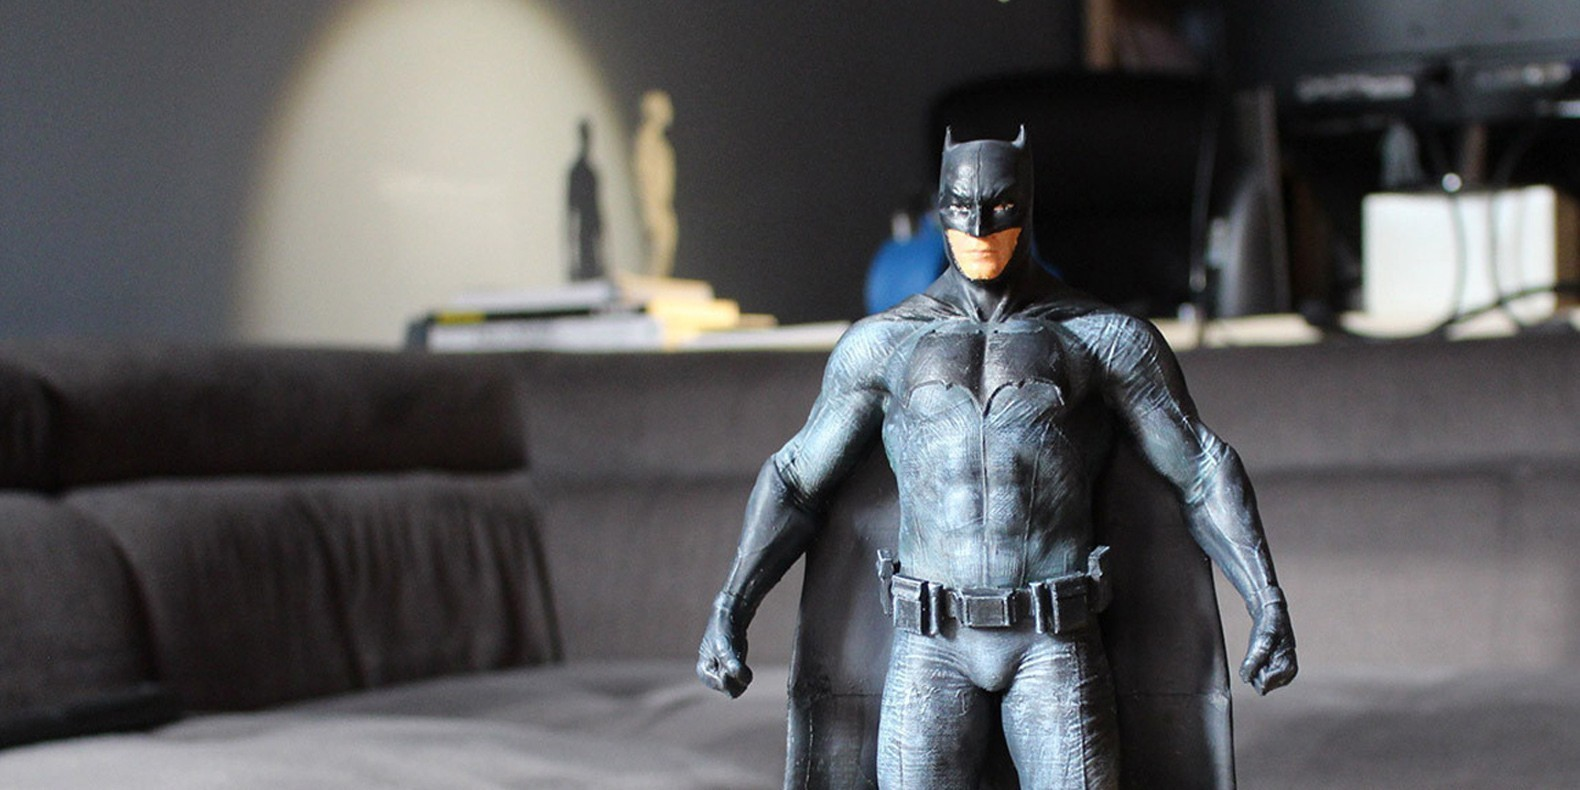 Here is a selection of the best Batman 3D models to make with a 3D printer